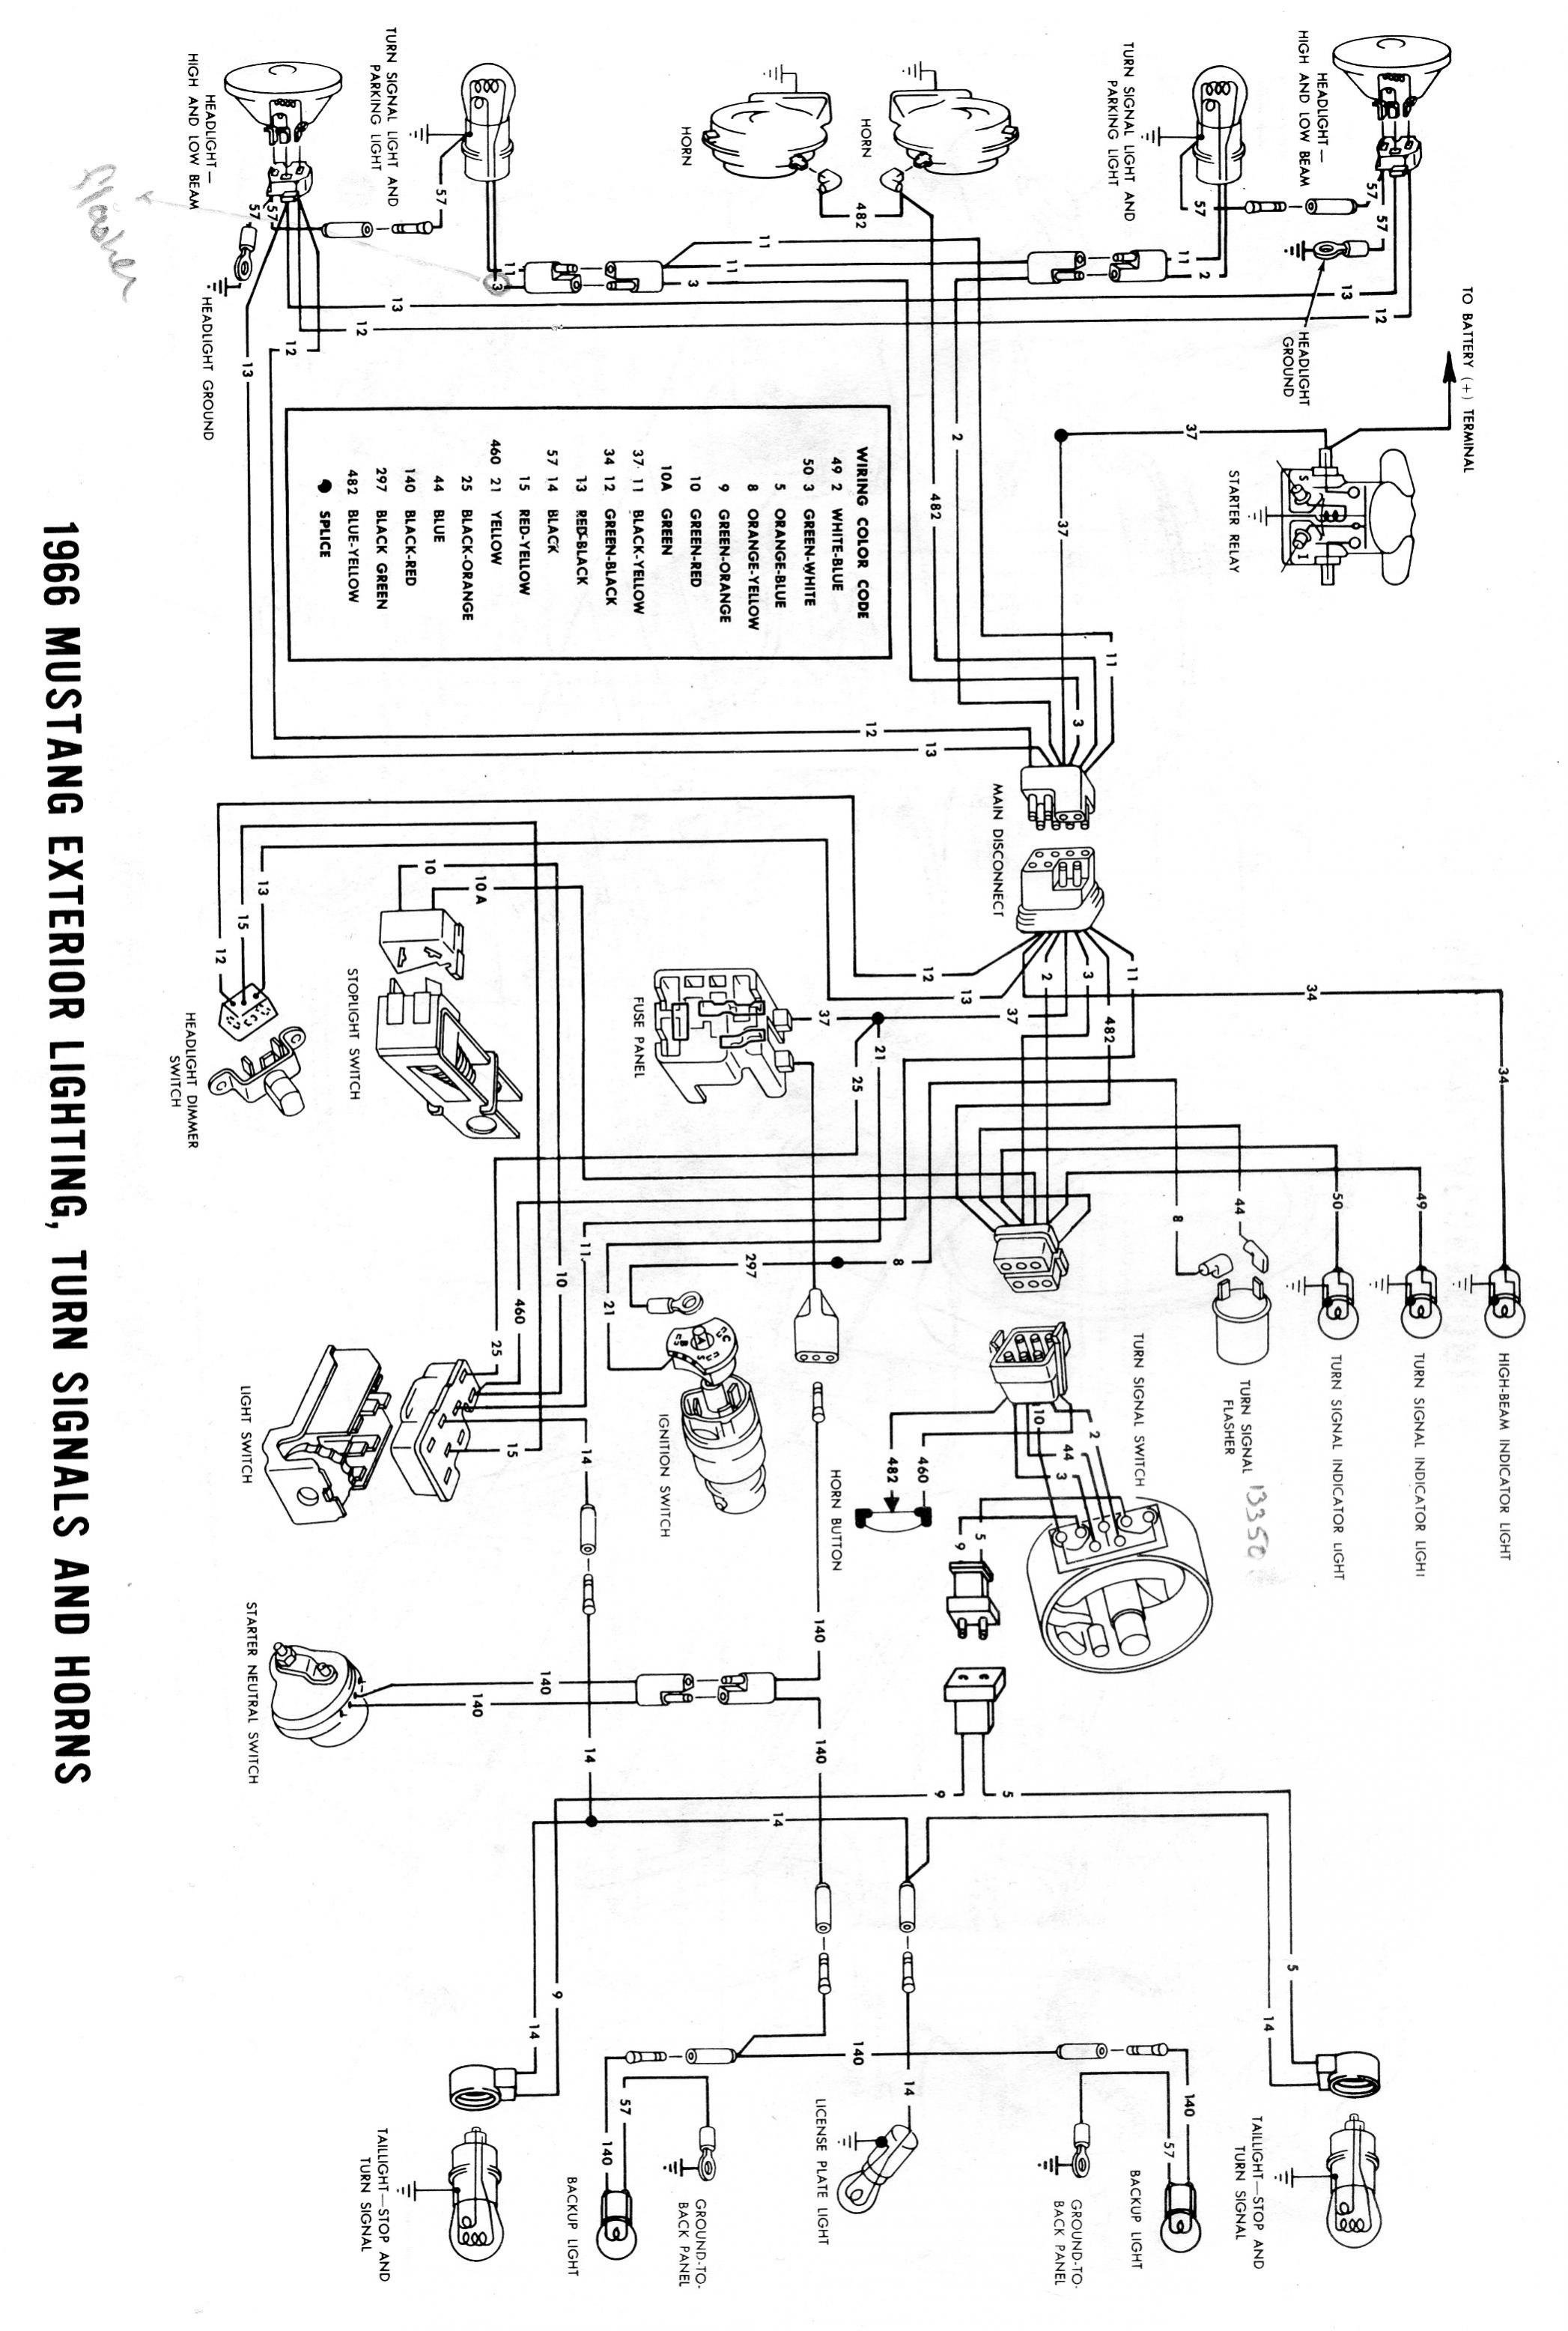 toyota land cruiser wiring diagram wiring diagram 1989 toyota land cruiser wiring-diagram 1991 toyota pickup turn signal wiring diagram schematic diagramturn signal plugs on toyota land cruiser turn